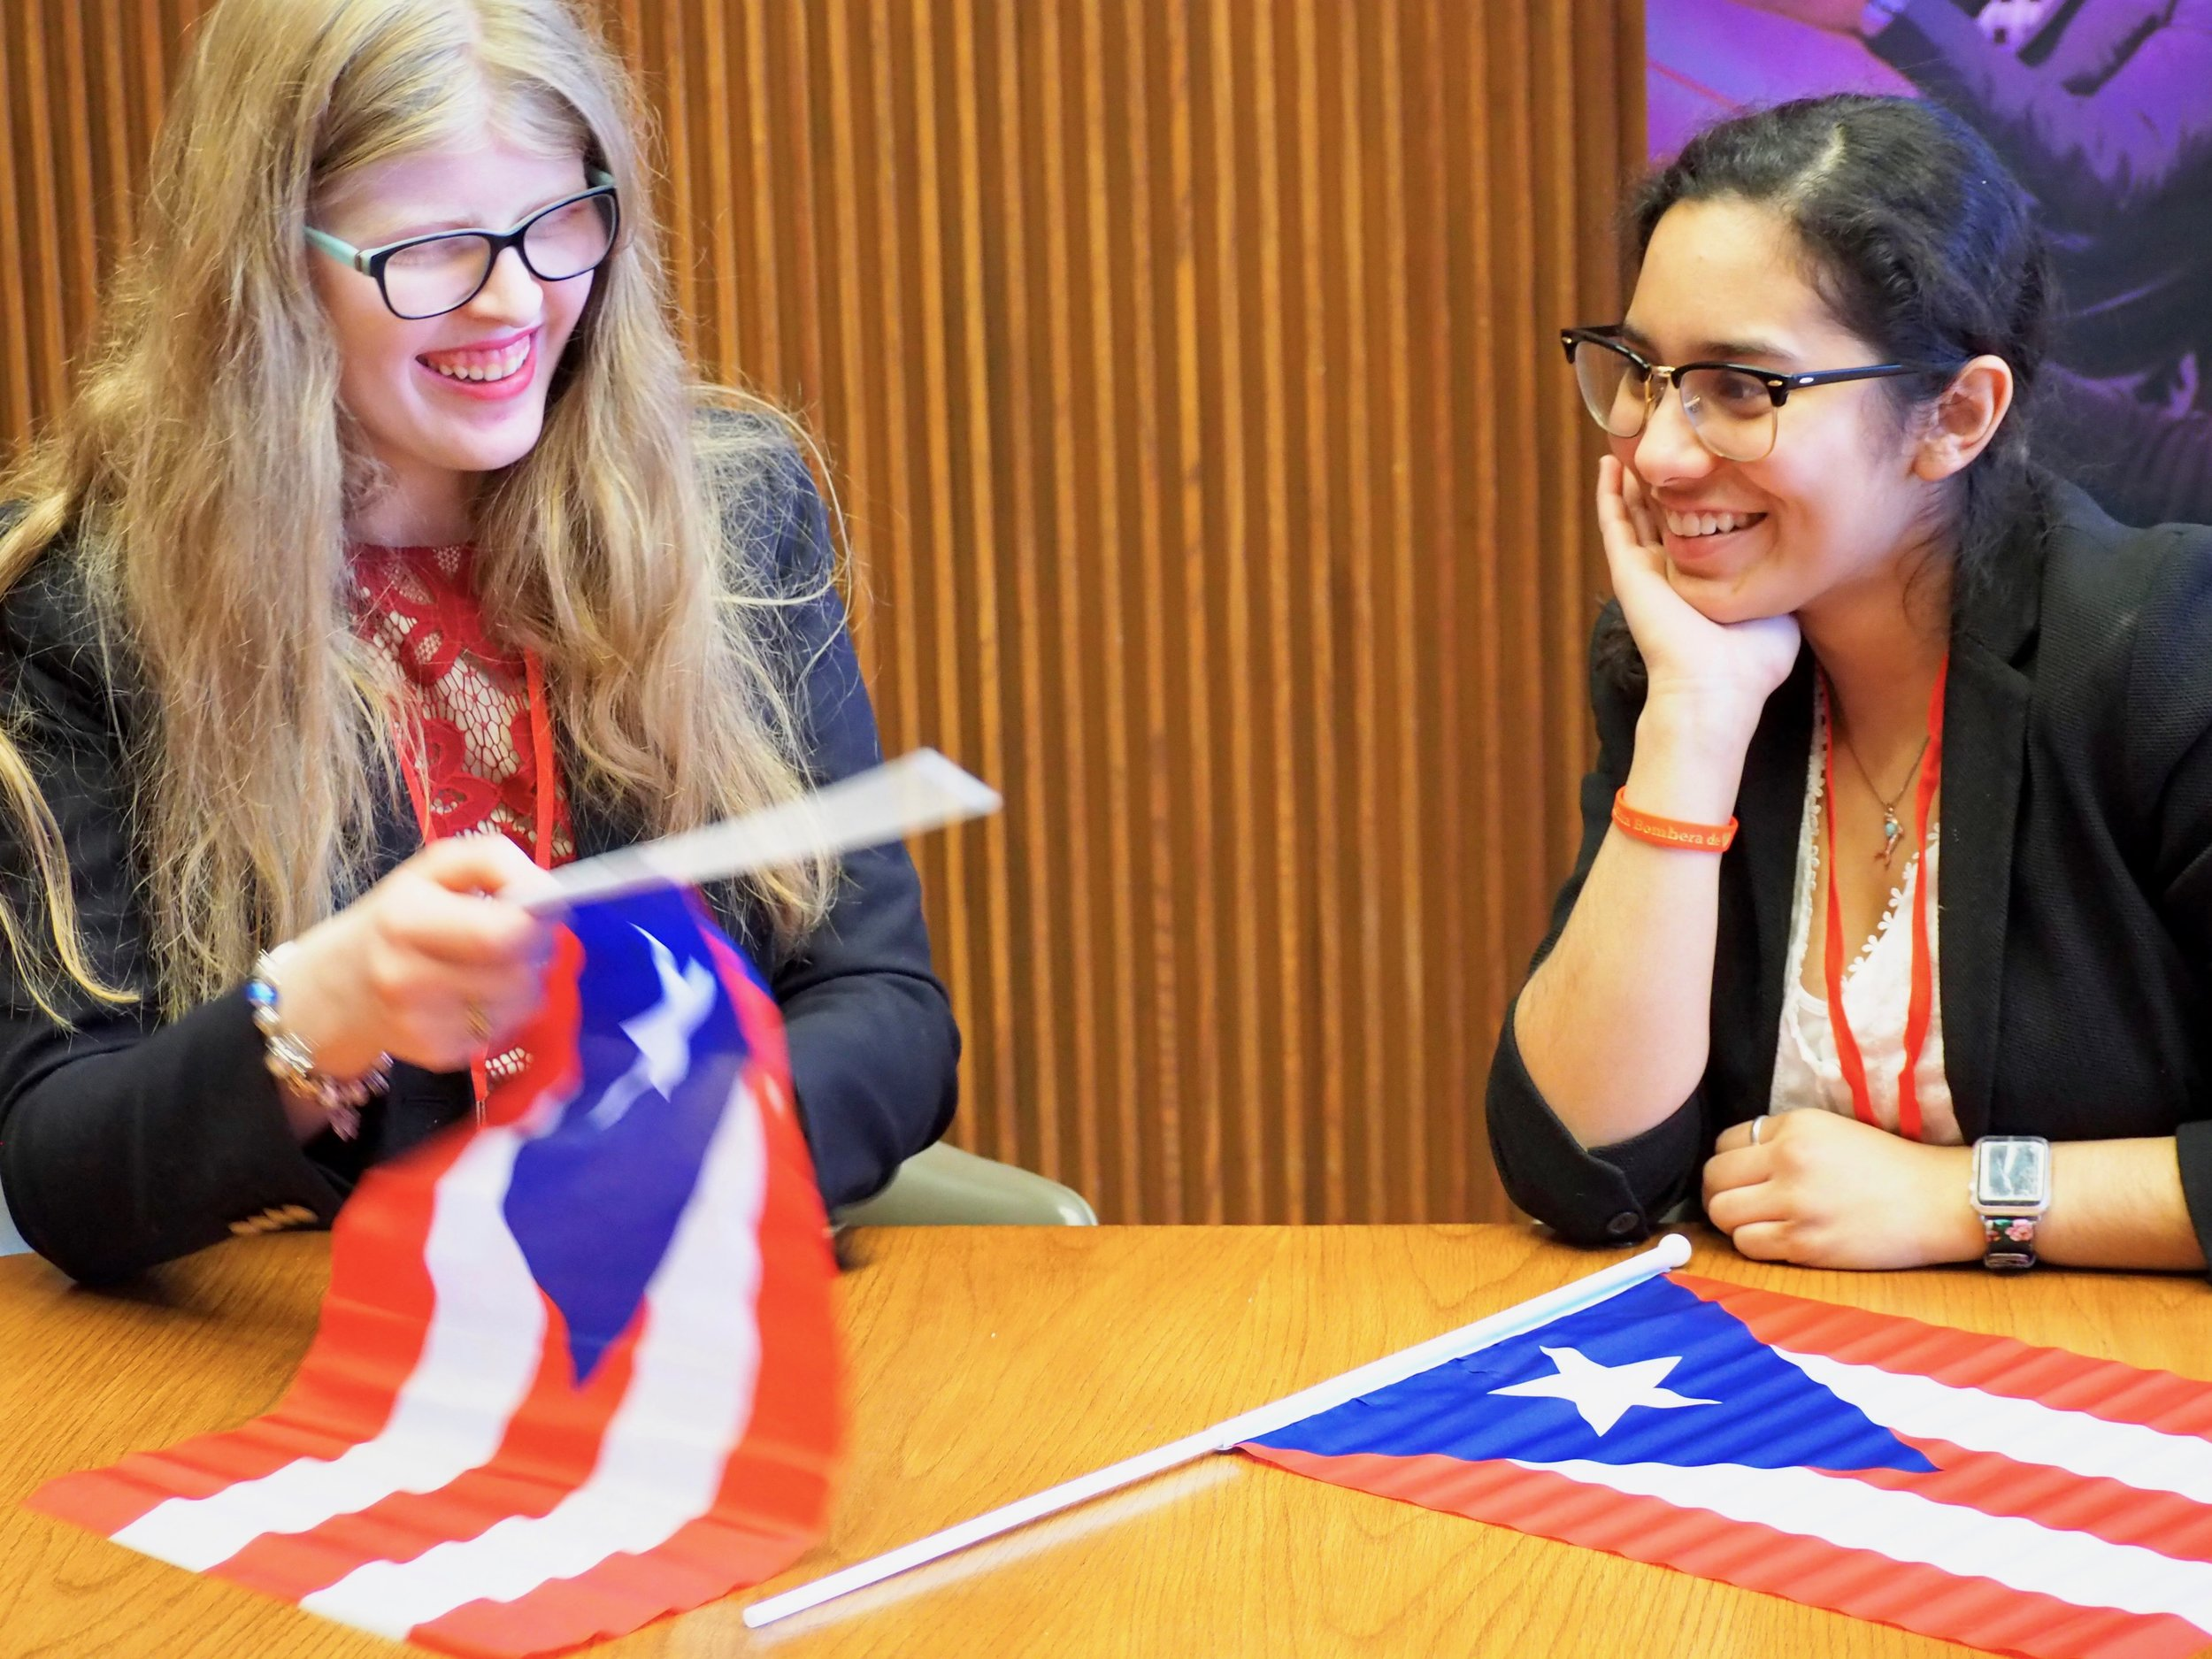 Mariel Rancel, left, and Lici Rivera, right, of The Union for Puerto Rican Students at The University of Illinois at Chicago, discussing the Pa'Lante conference and symposium on Friday. (Sofi LaLonde/SJNN)